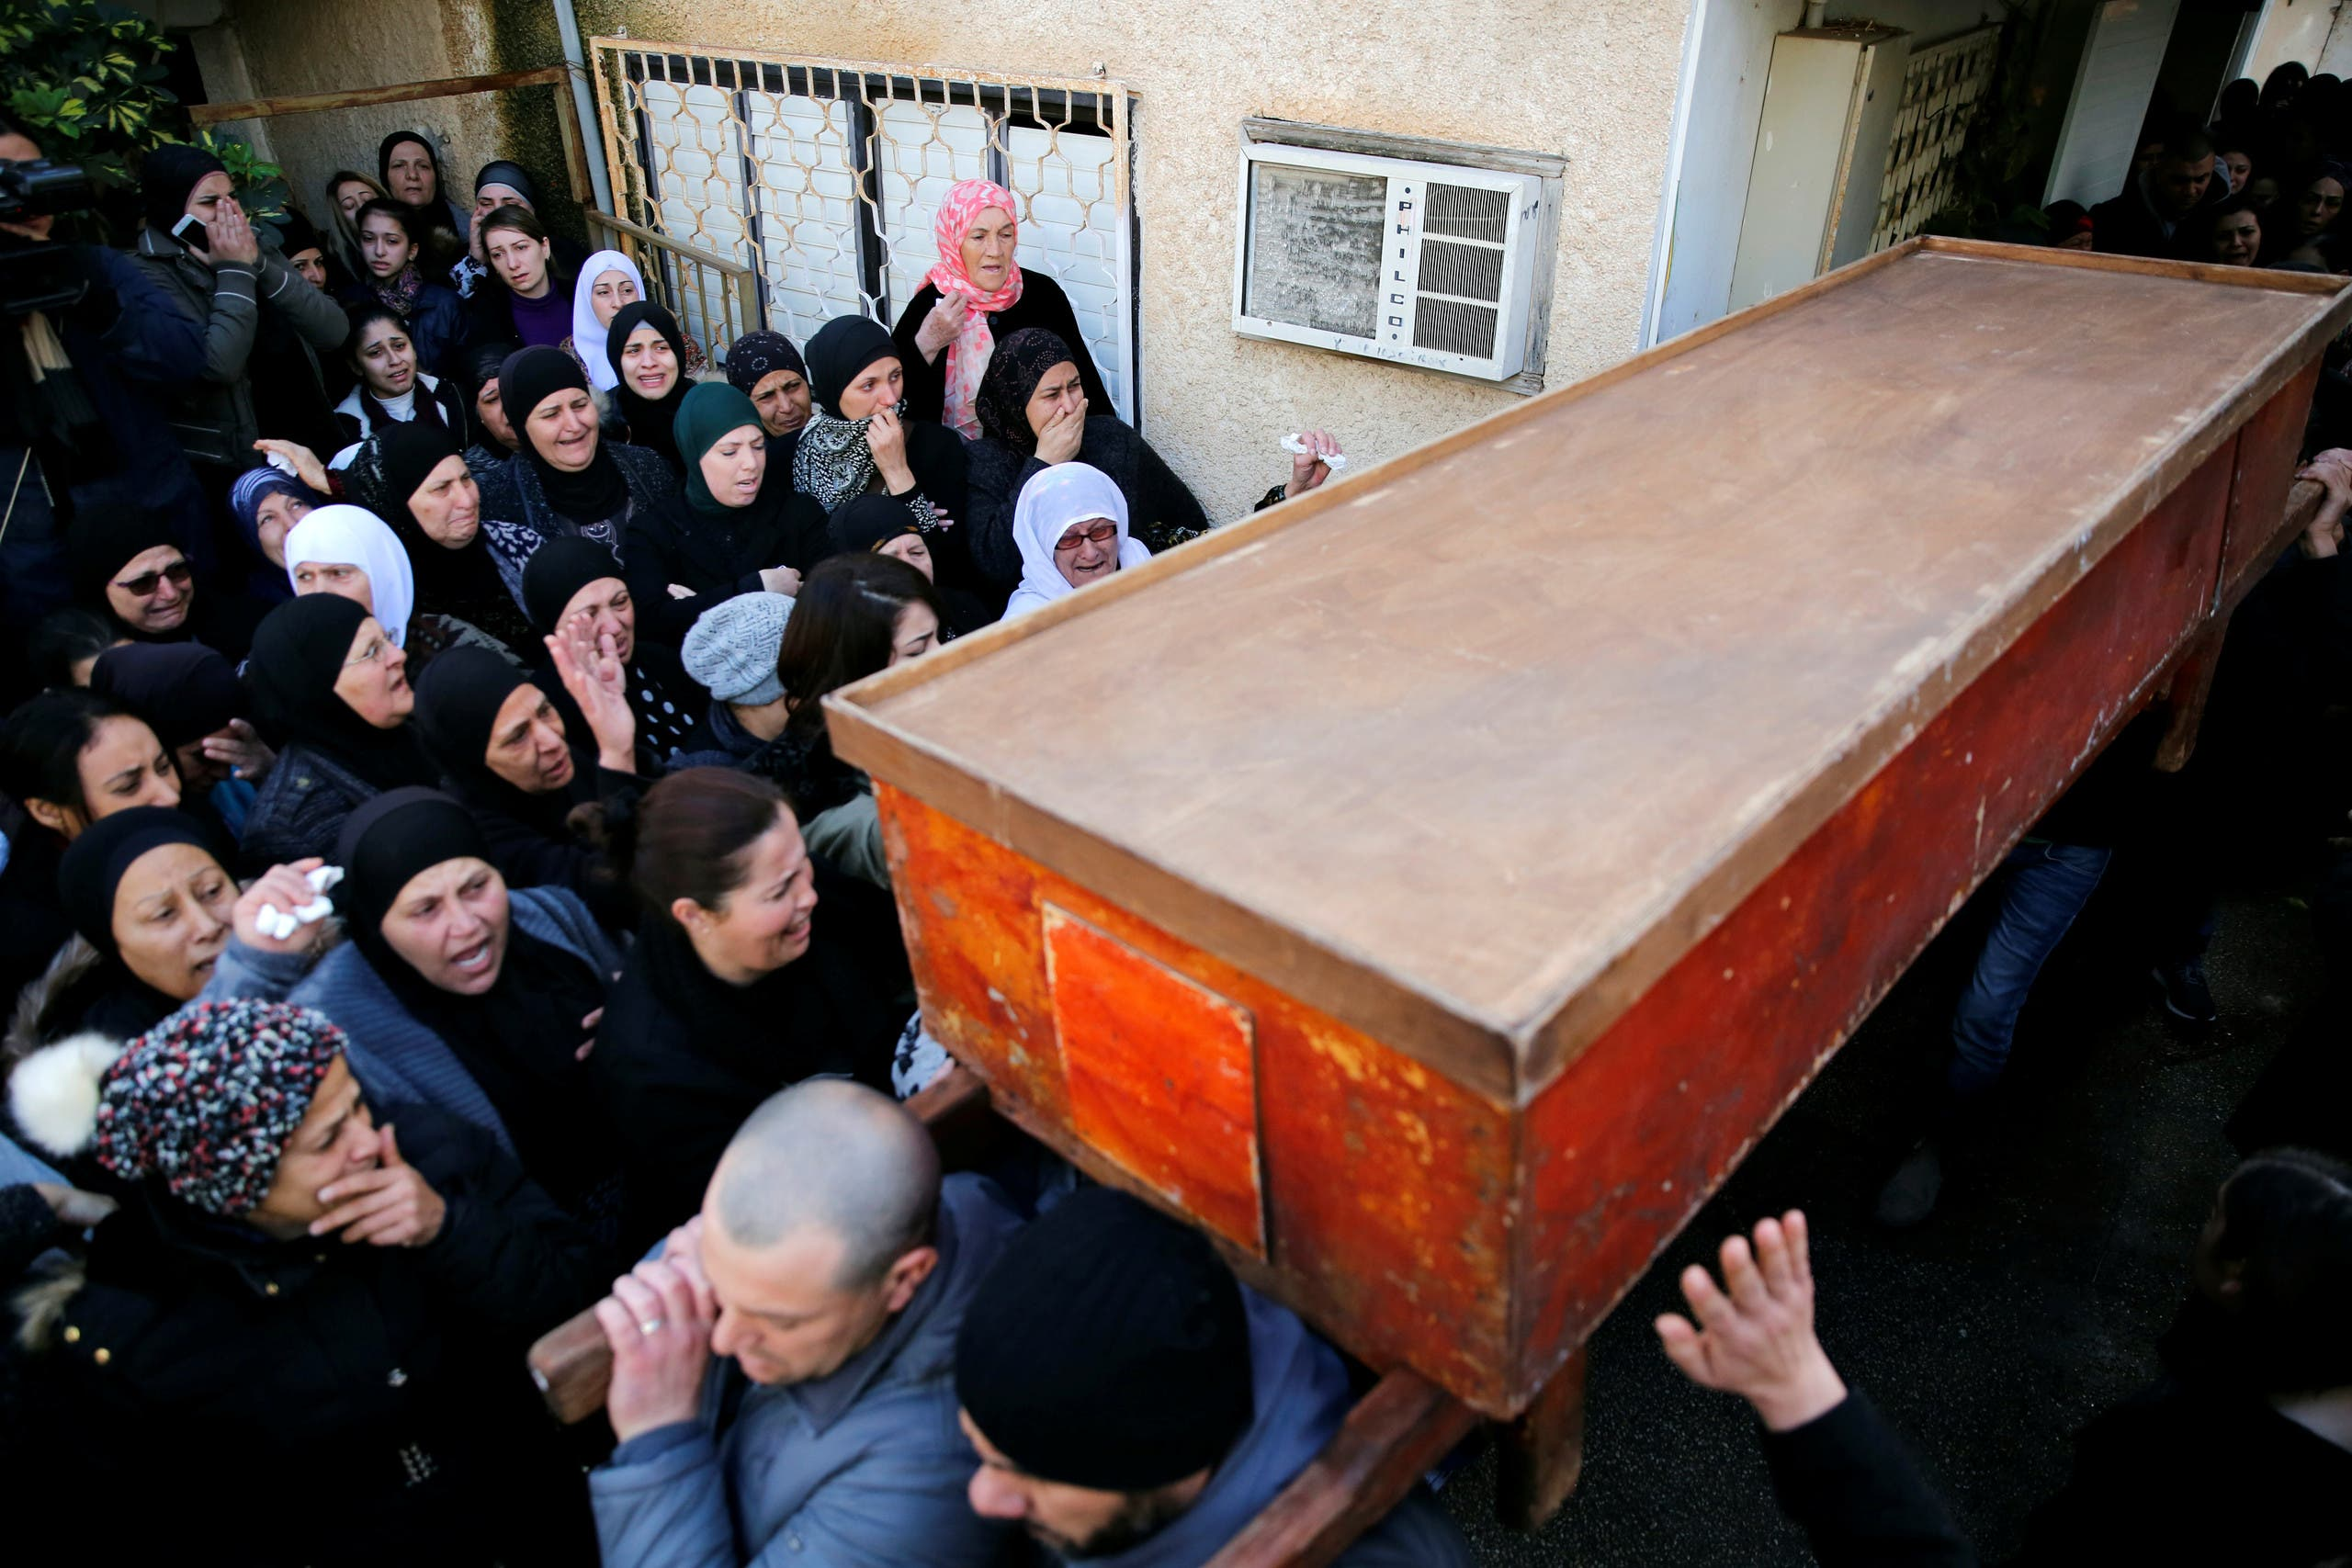 The coffin of Israeli woman, Leanne Nasser, who was killed in an Istanbul nightclub attack, is carried out of the family house to be buried at the Israeli town of Tira, Israel January 3, 2017. REUTERS/Ronen Zvulun